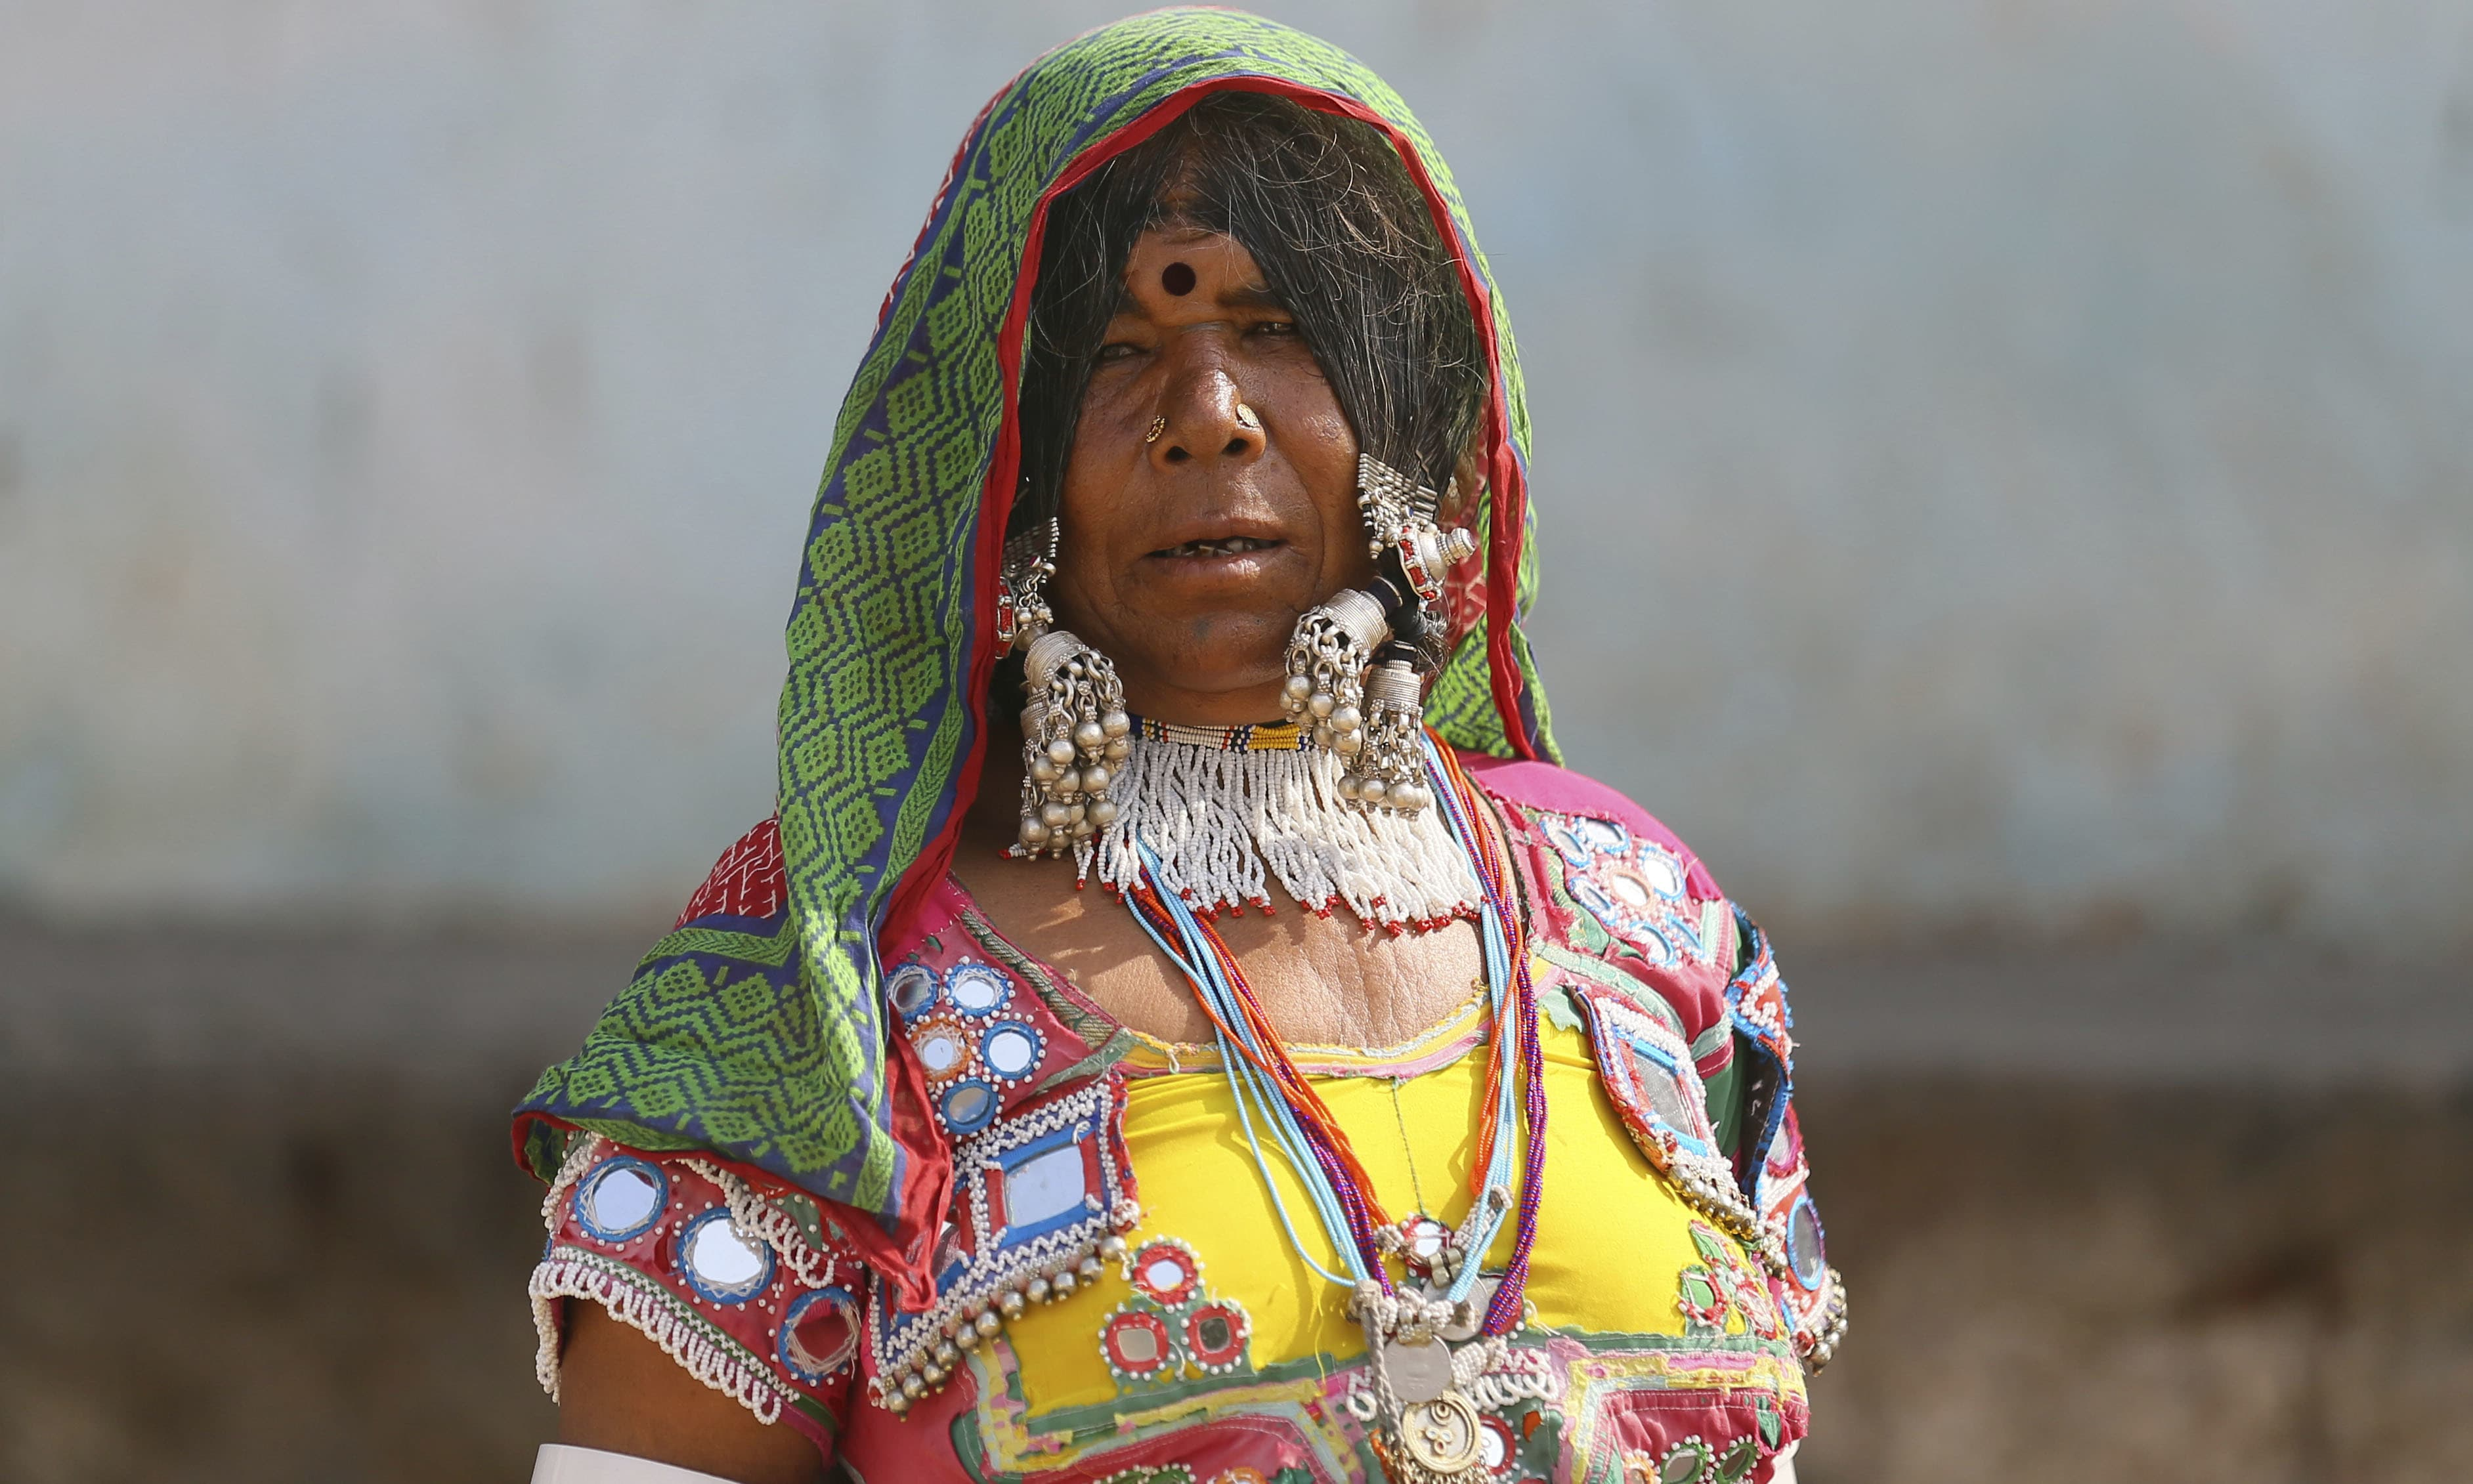 India's tribal women see little hope in election